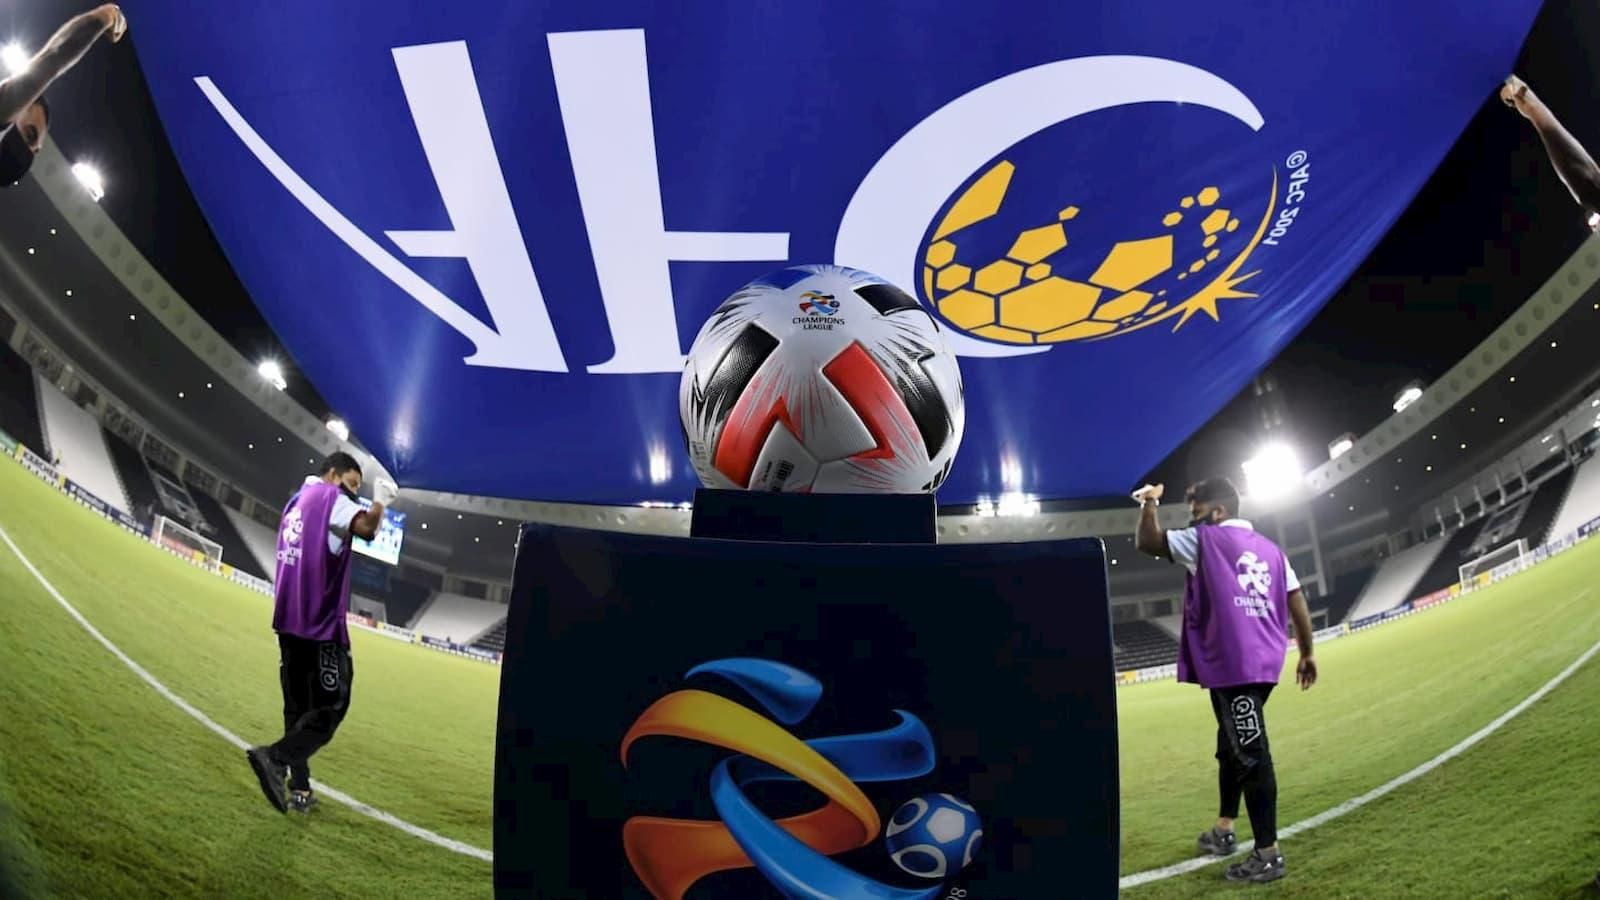 Stage set for 2020 AFC Champions League (East) in Doha